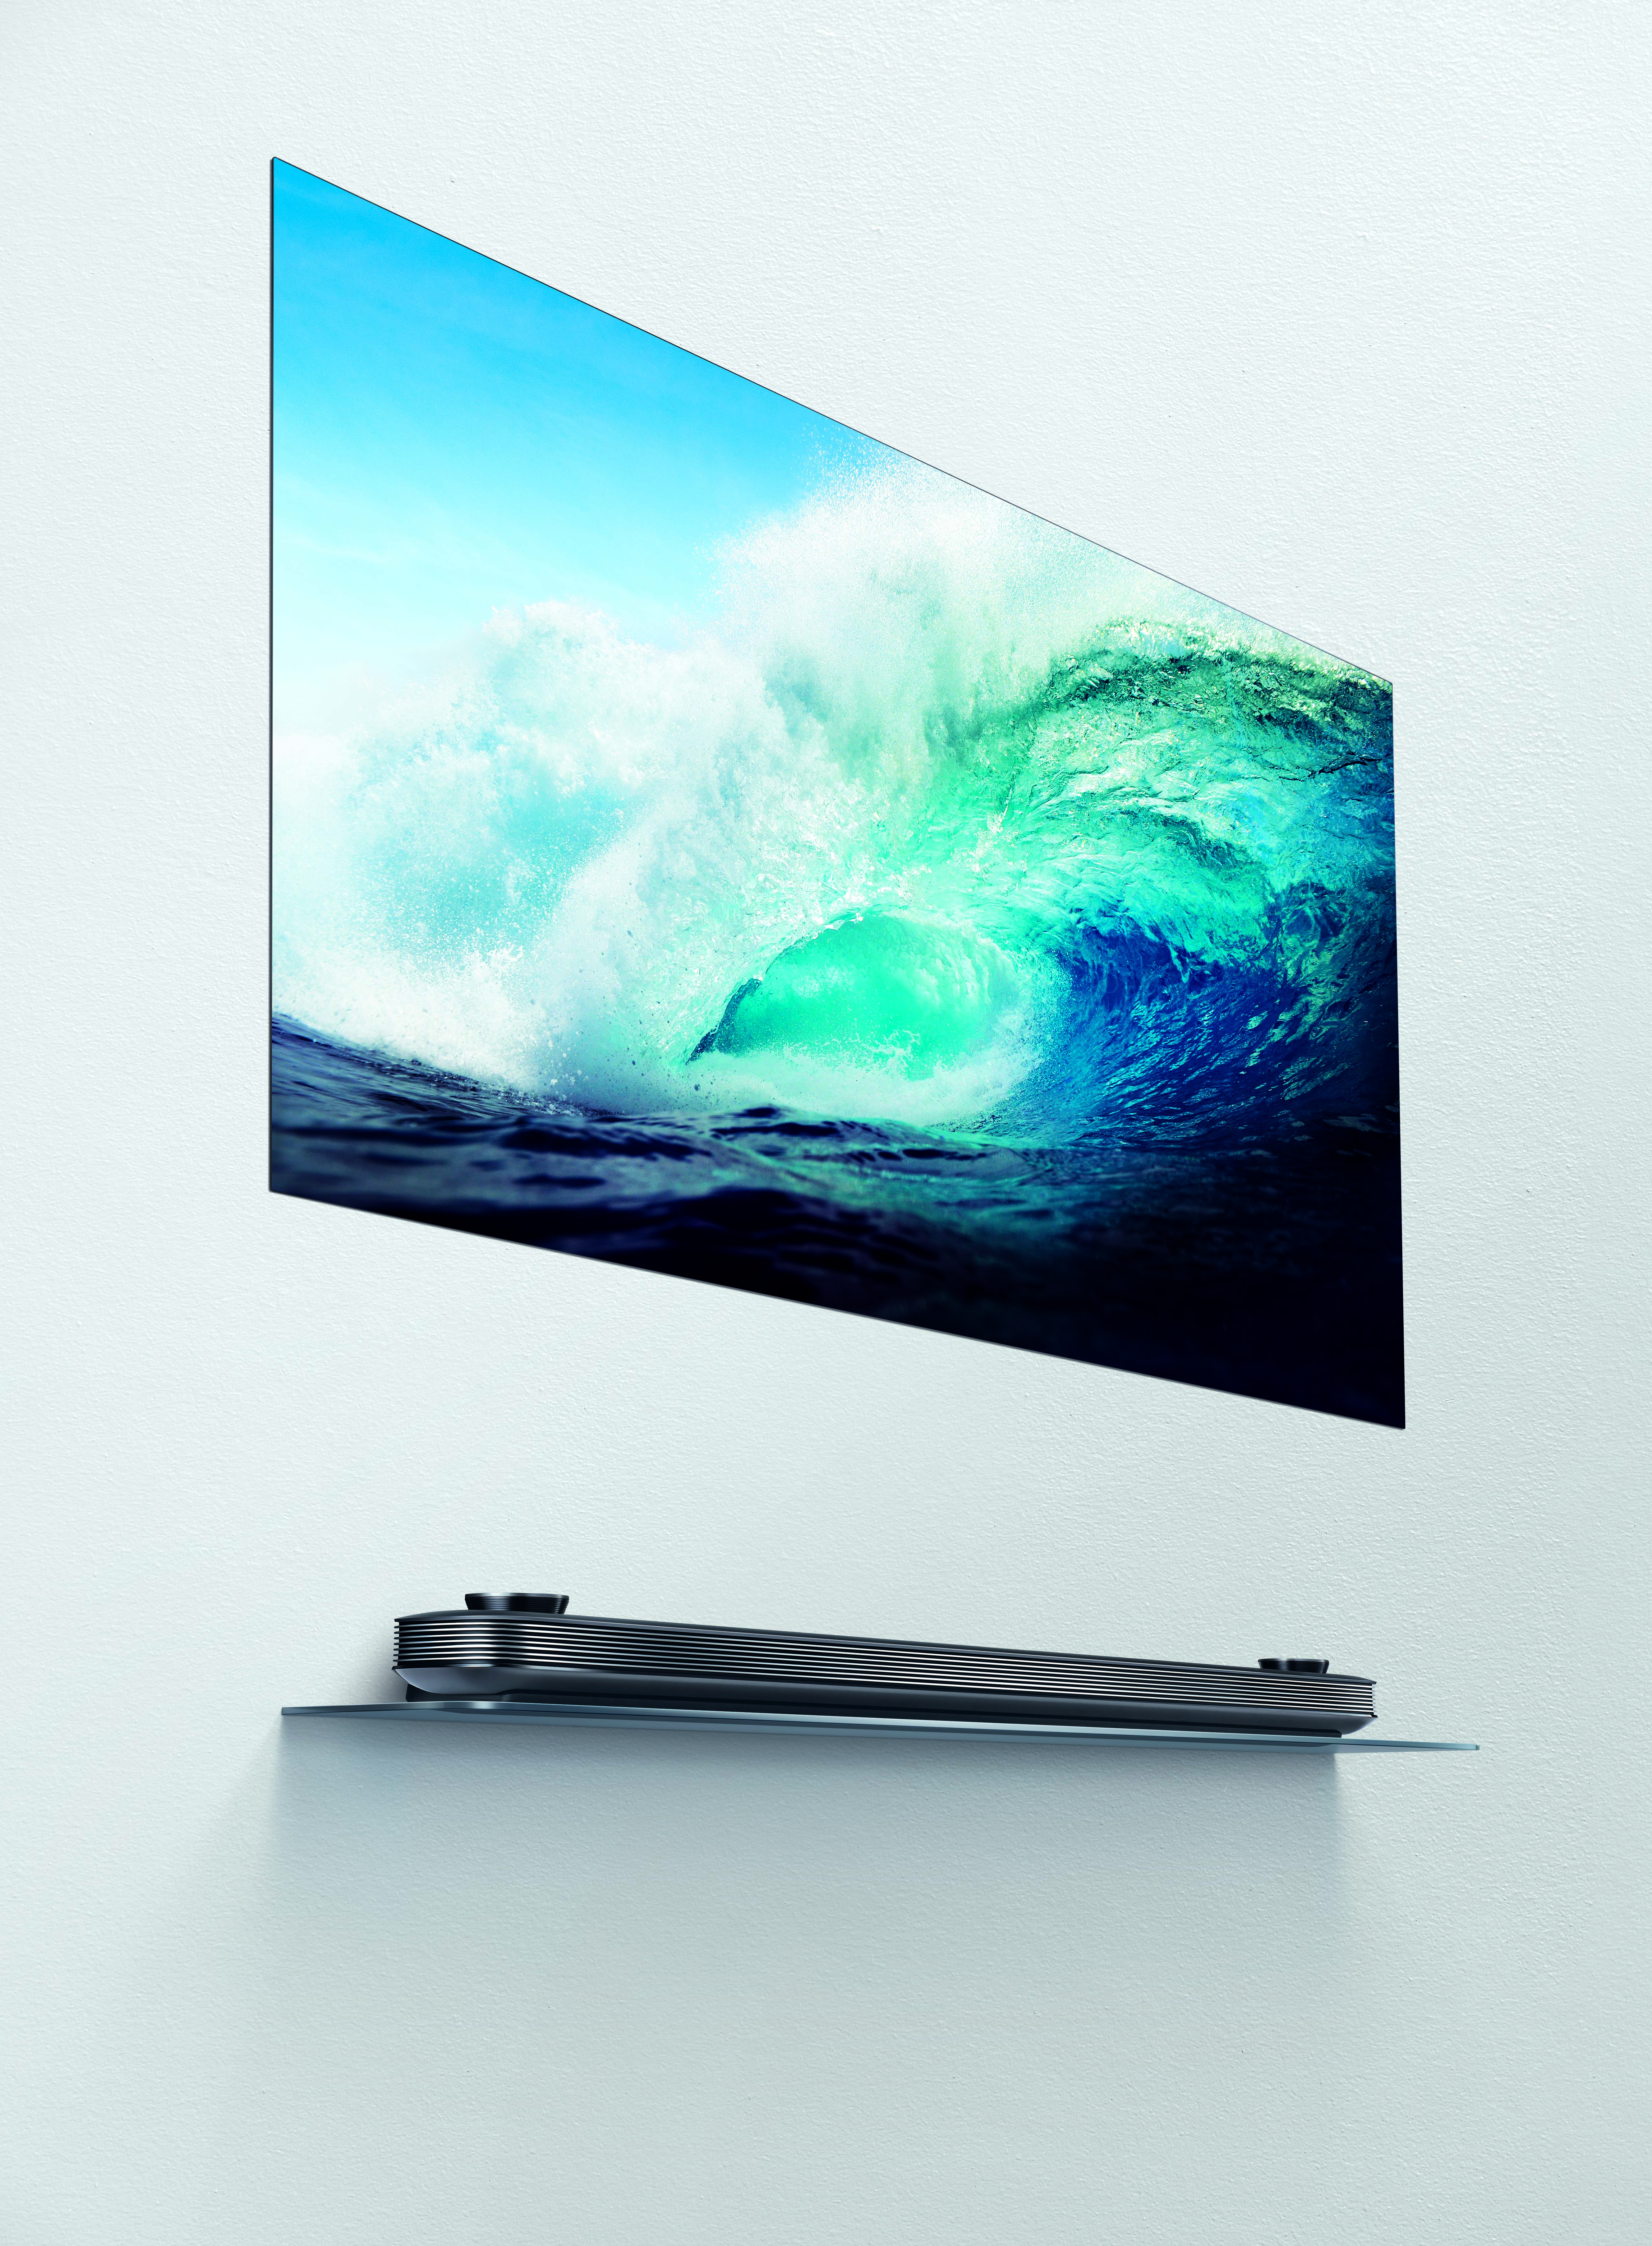 LG SIGNATURE OLED TV W (with screen image).jpg